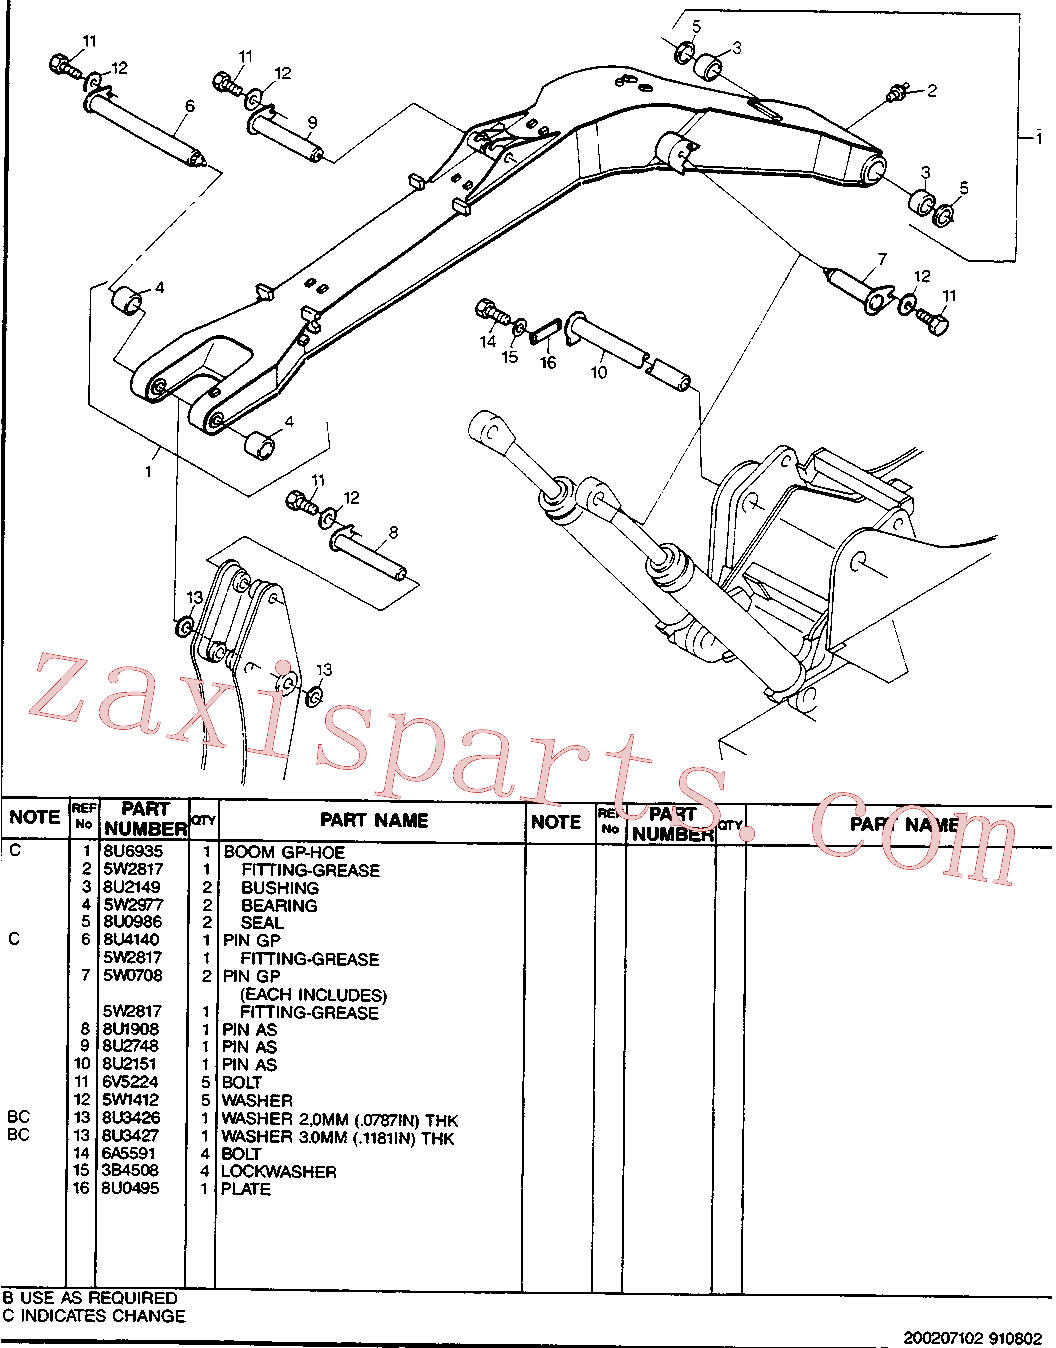 CAT 5W-6782 for 214B FT Excavator(EXC) boom, sticks, linkage & buckets 8U-2746 Assembly